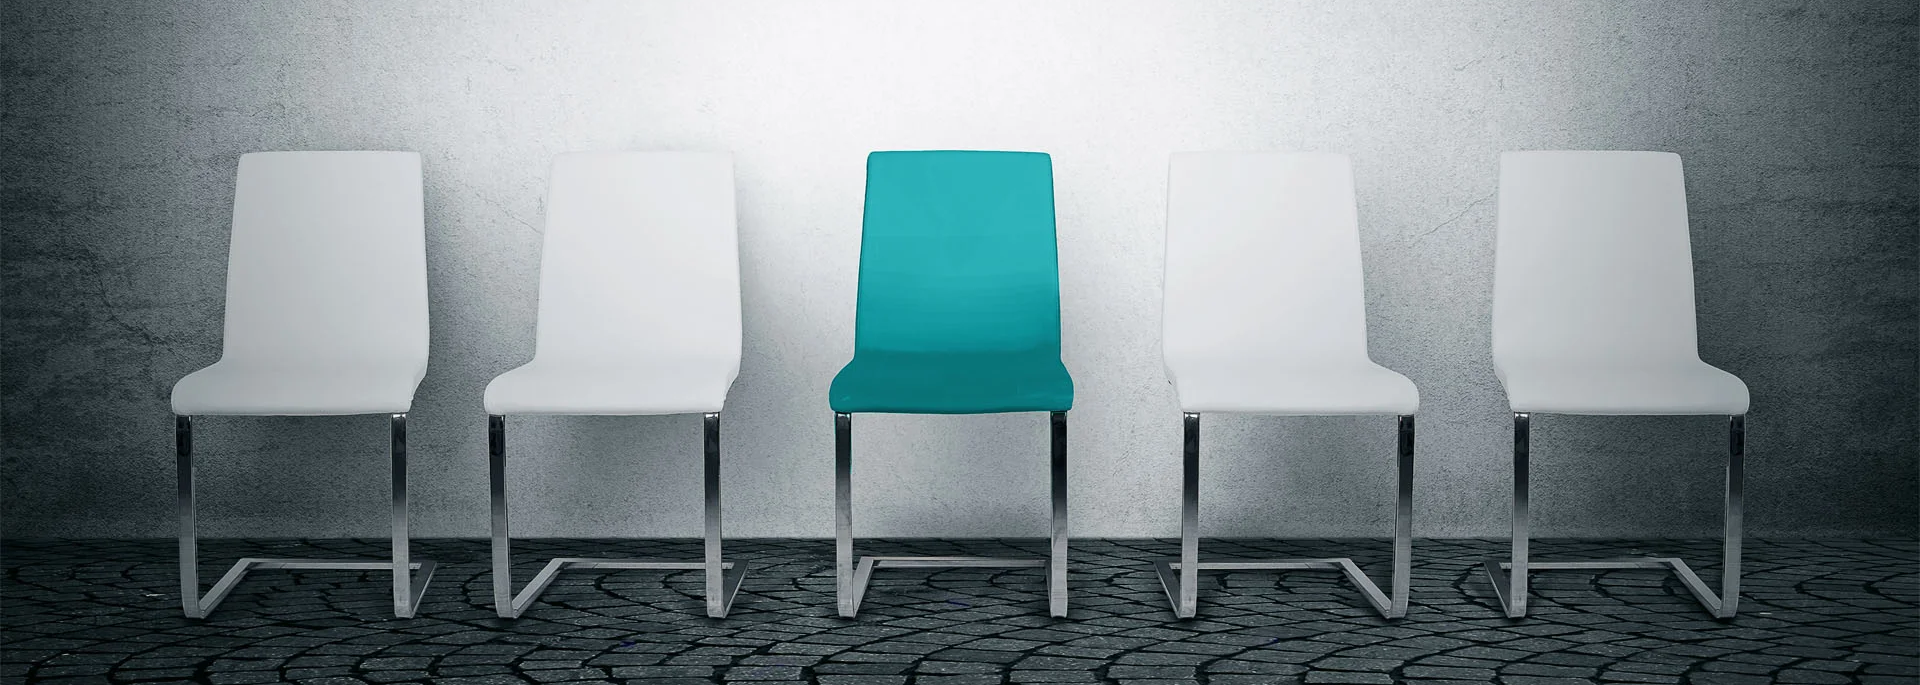 Chair-Image (1)-1